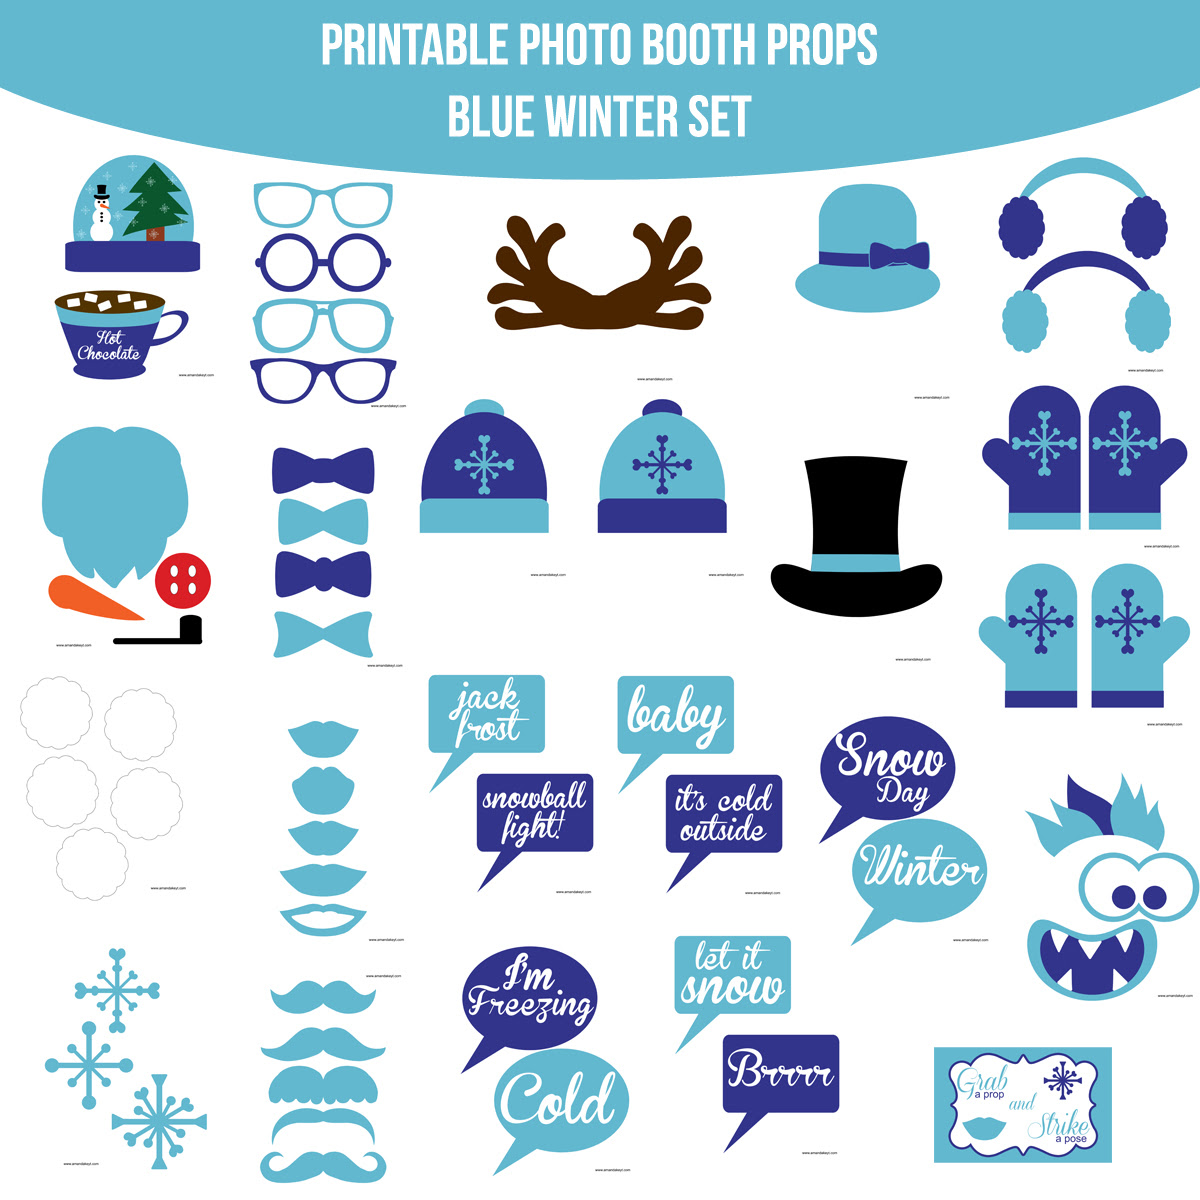 Instant Download Winter Blue Printable Photo Booth Prop Set Amanda